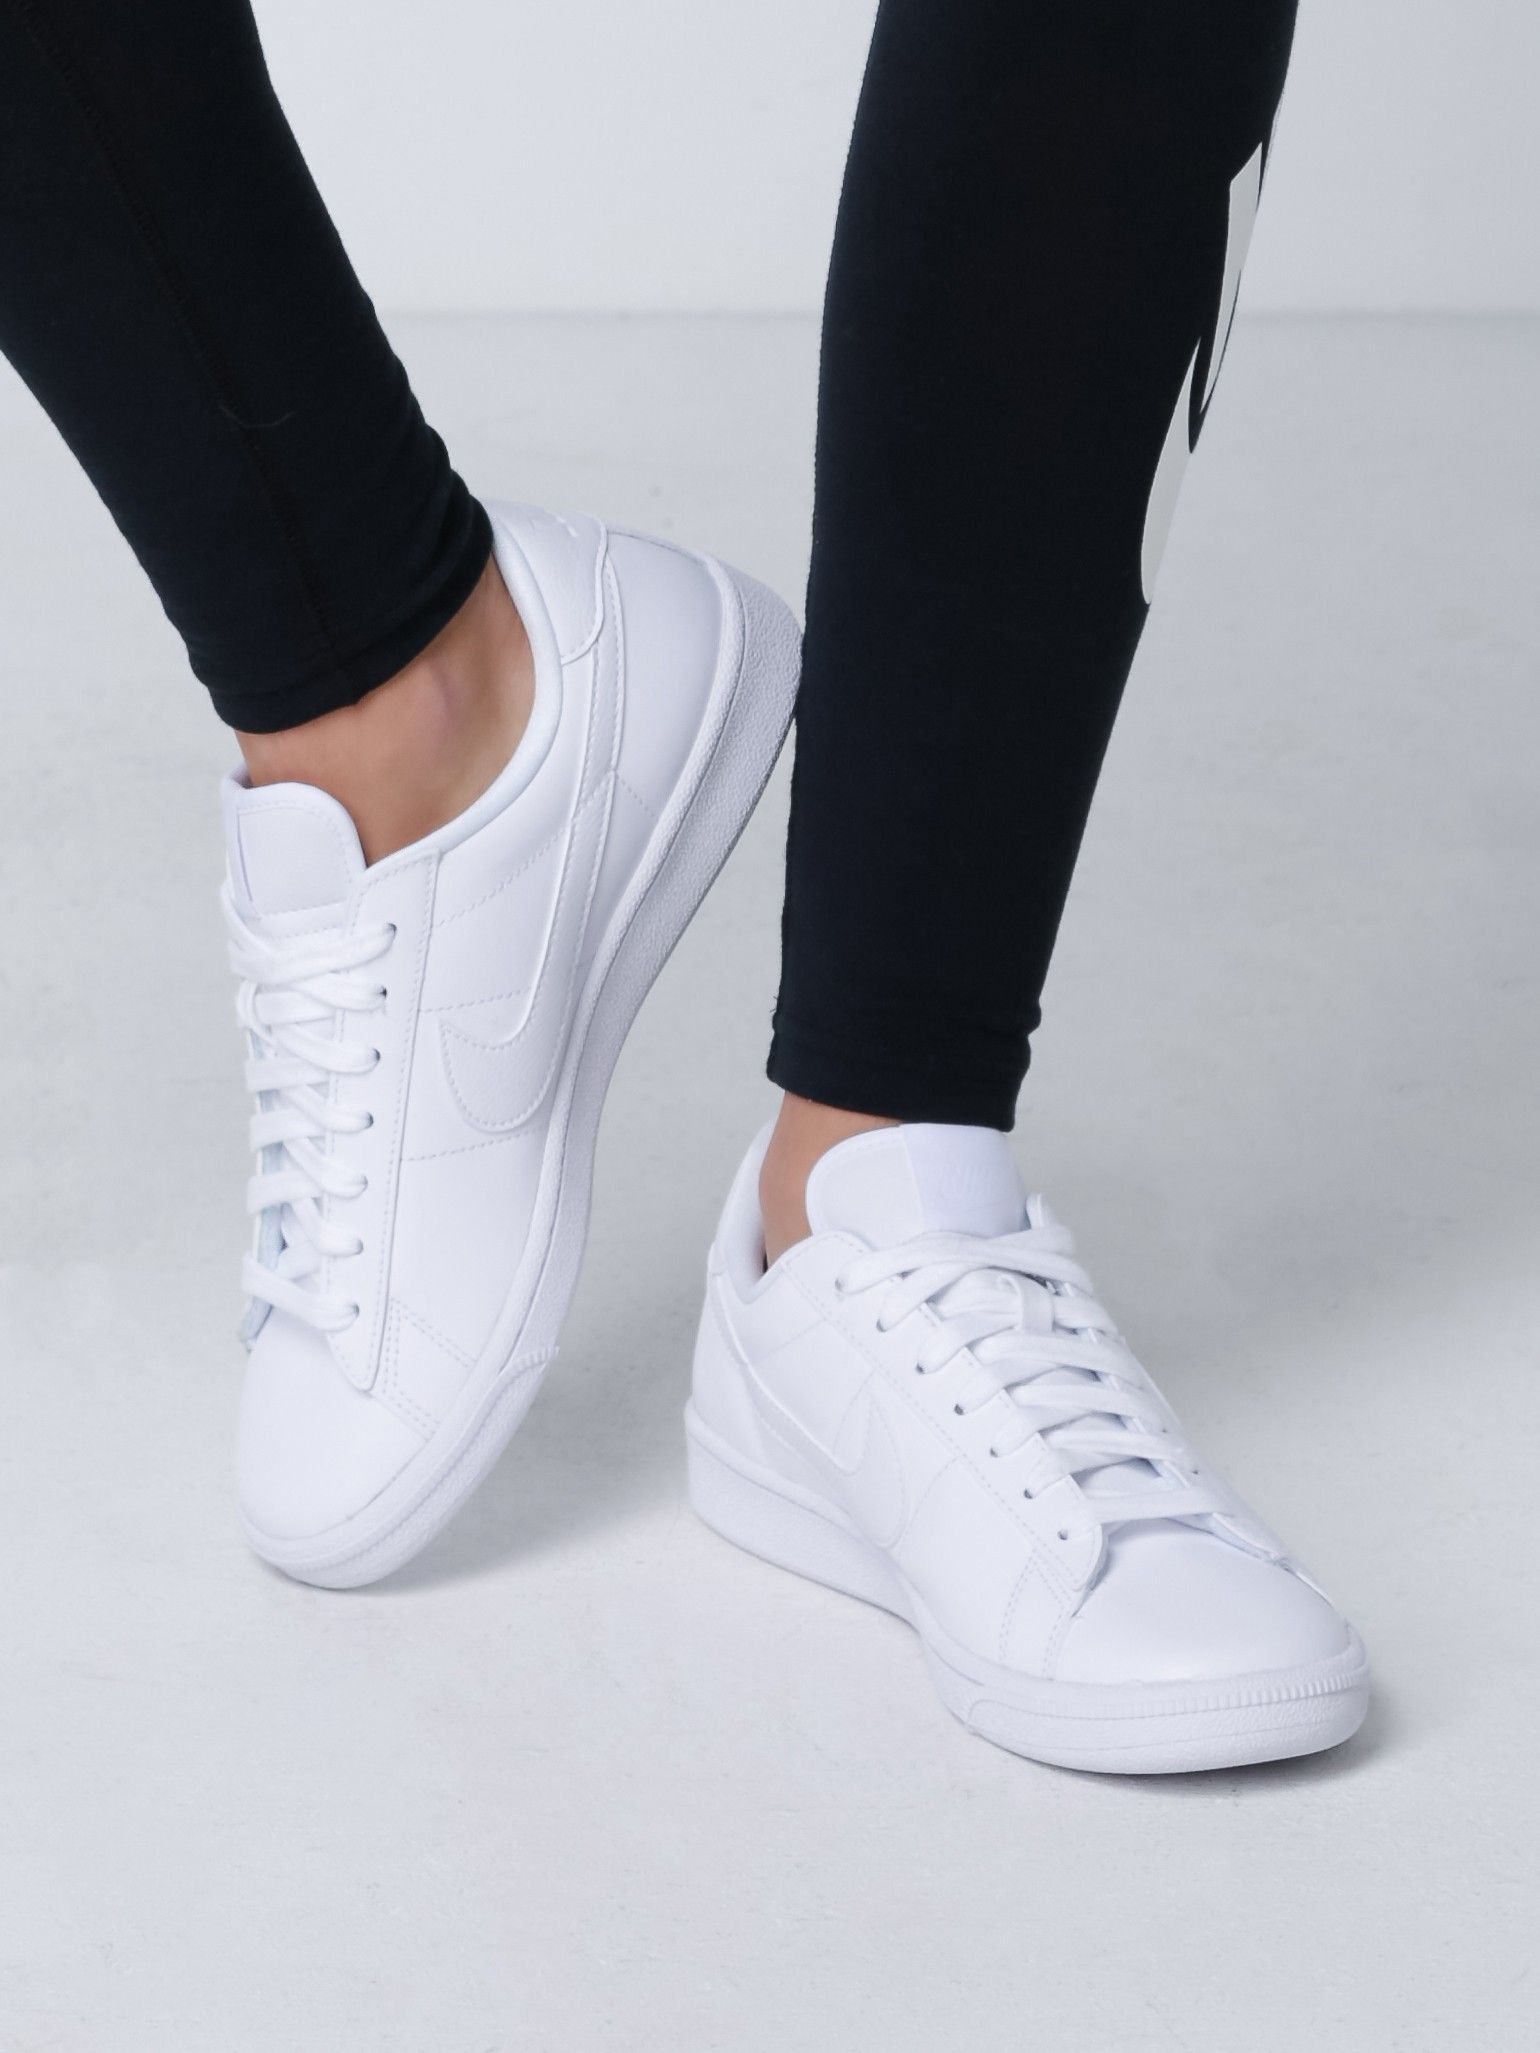 Womens Tennis Classic Sneakers In White Sneakers Womens Sneakers Womens Tennis Sneakers